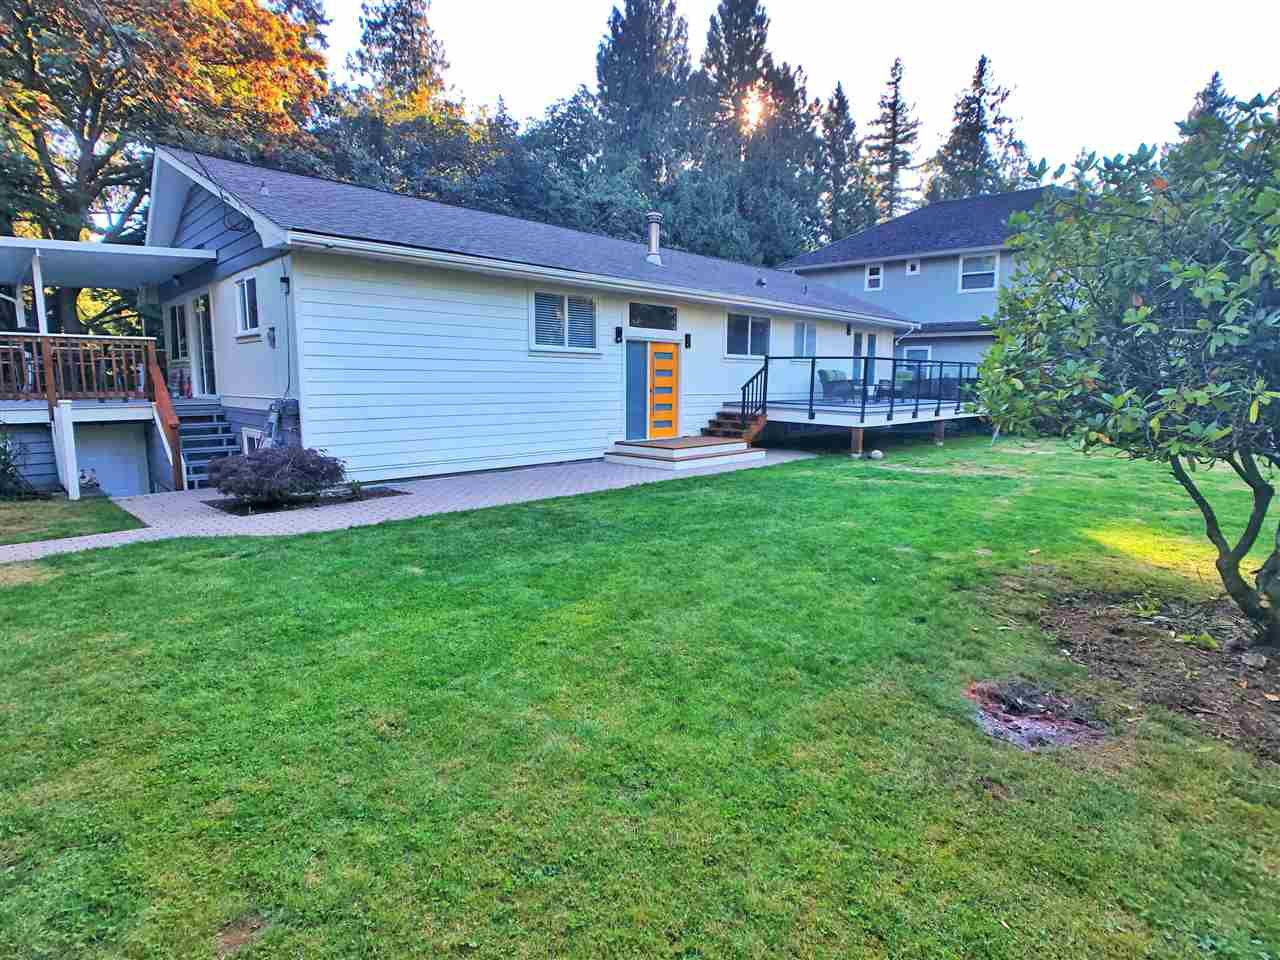 Main Photo: 4265 198 Street in Langley: Brookswood Langley House for sale : MLS®# R2510519